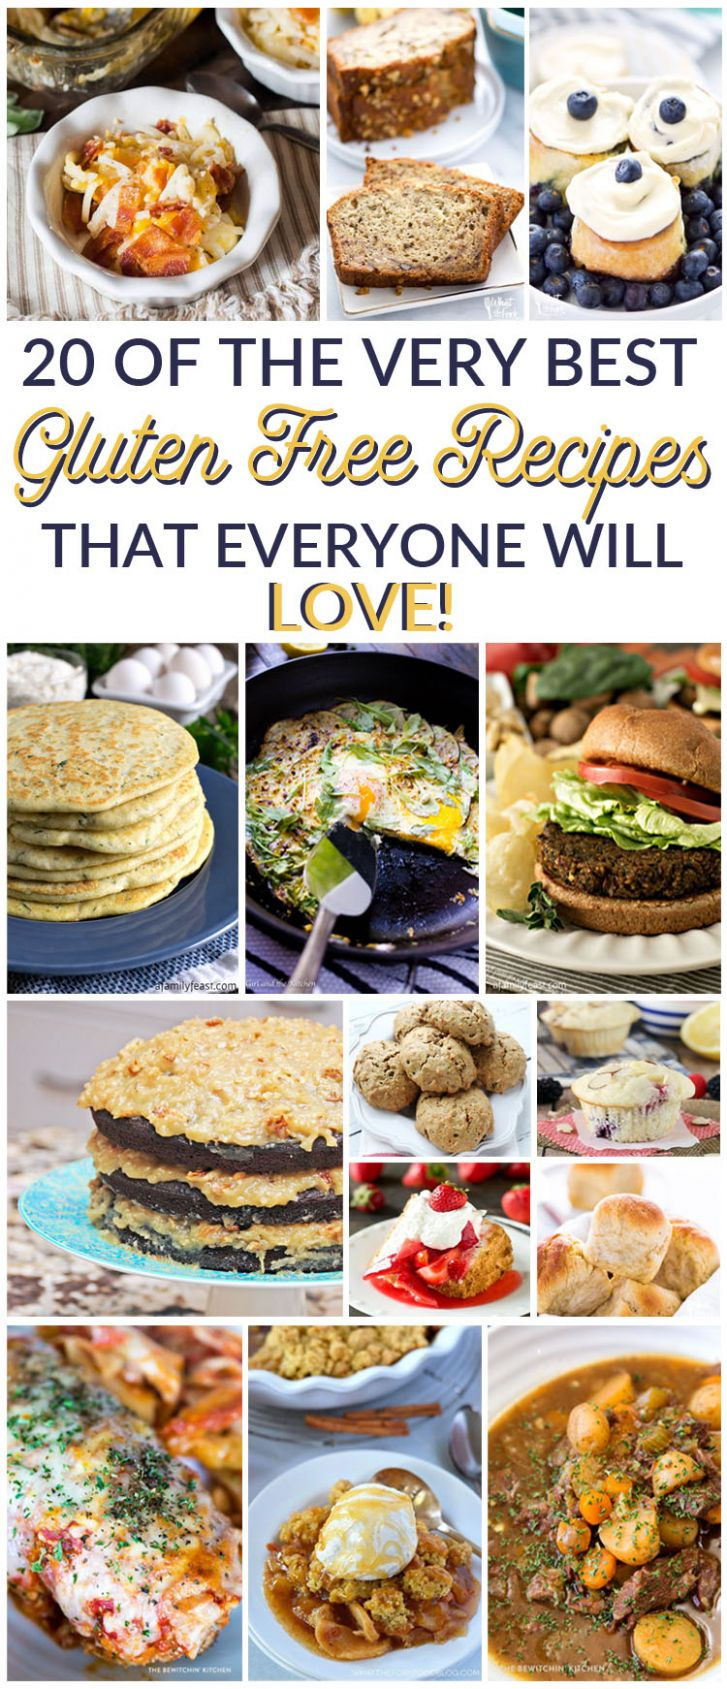 Simple + Easy Gluten Free Recipes Everyone Will Love - Easy Recipes Everyone Will Love